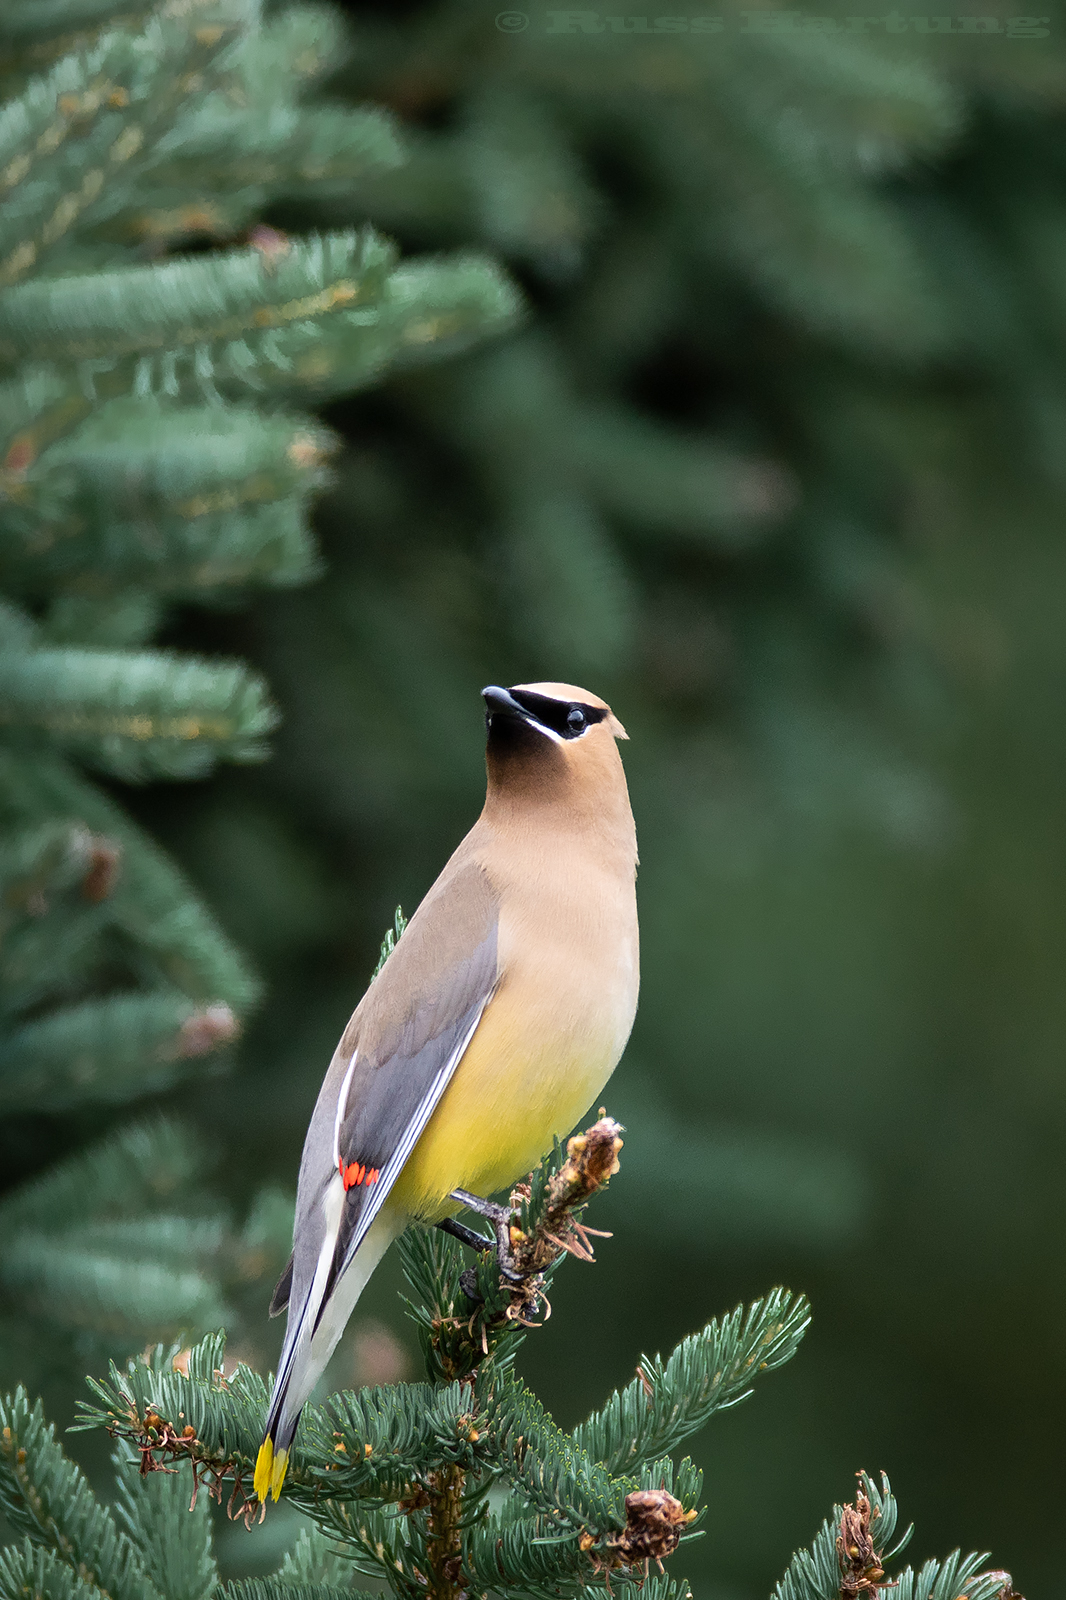 """Cedar Waxwing"" - Published in Adirondack Life Magazine, September/October issue 2019"